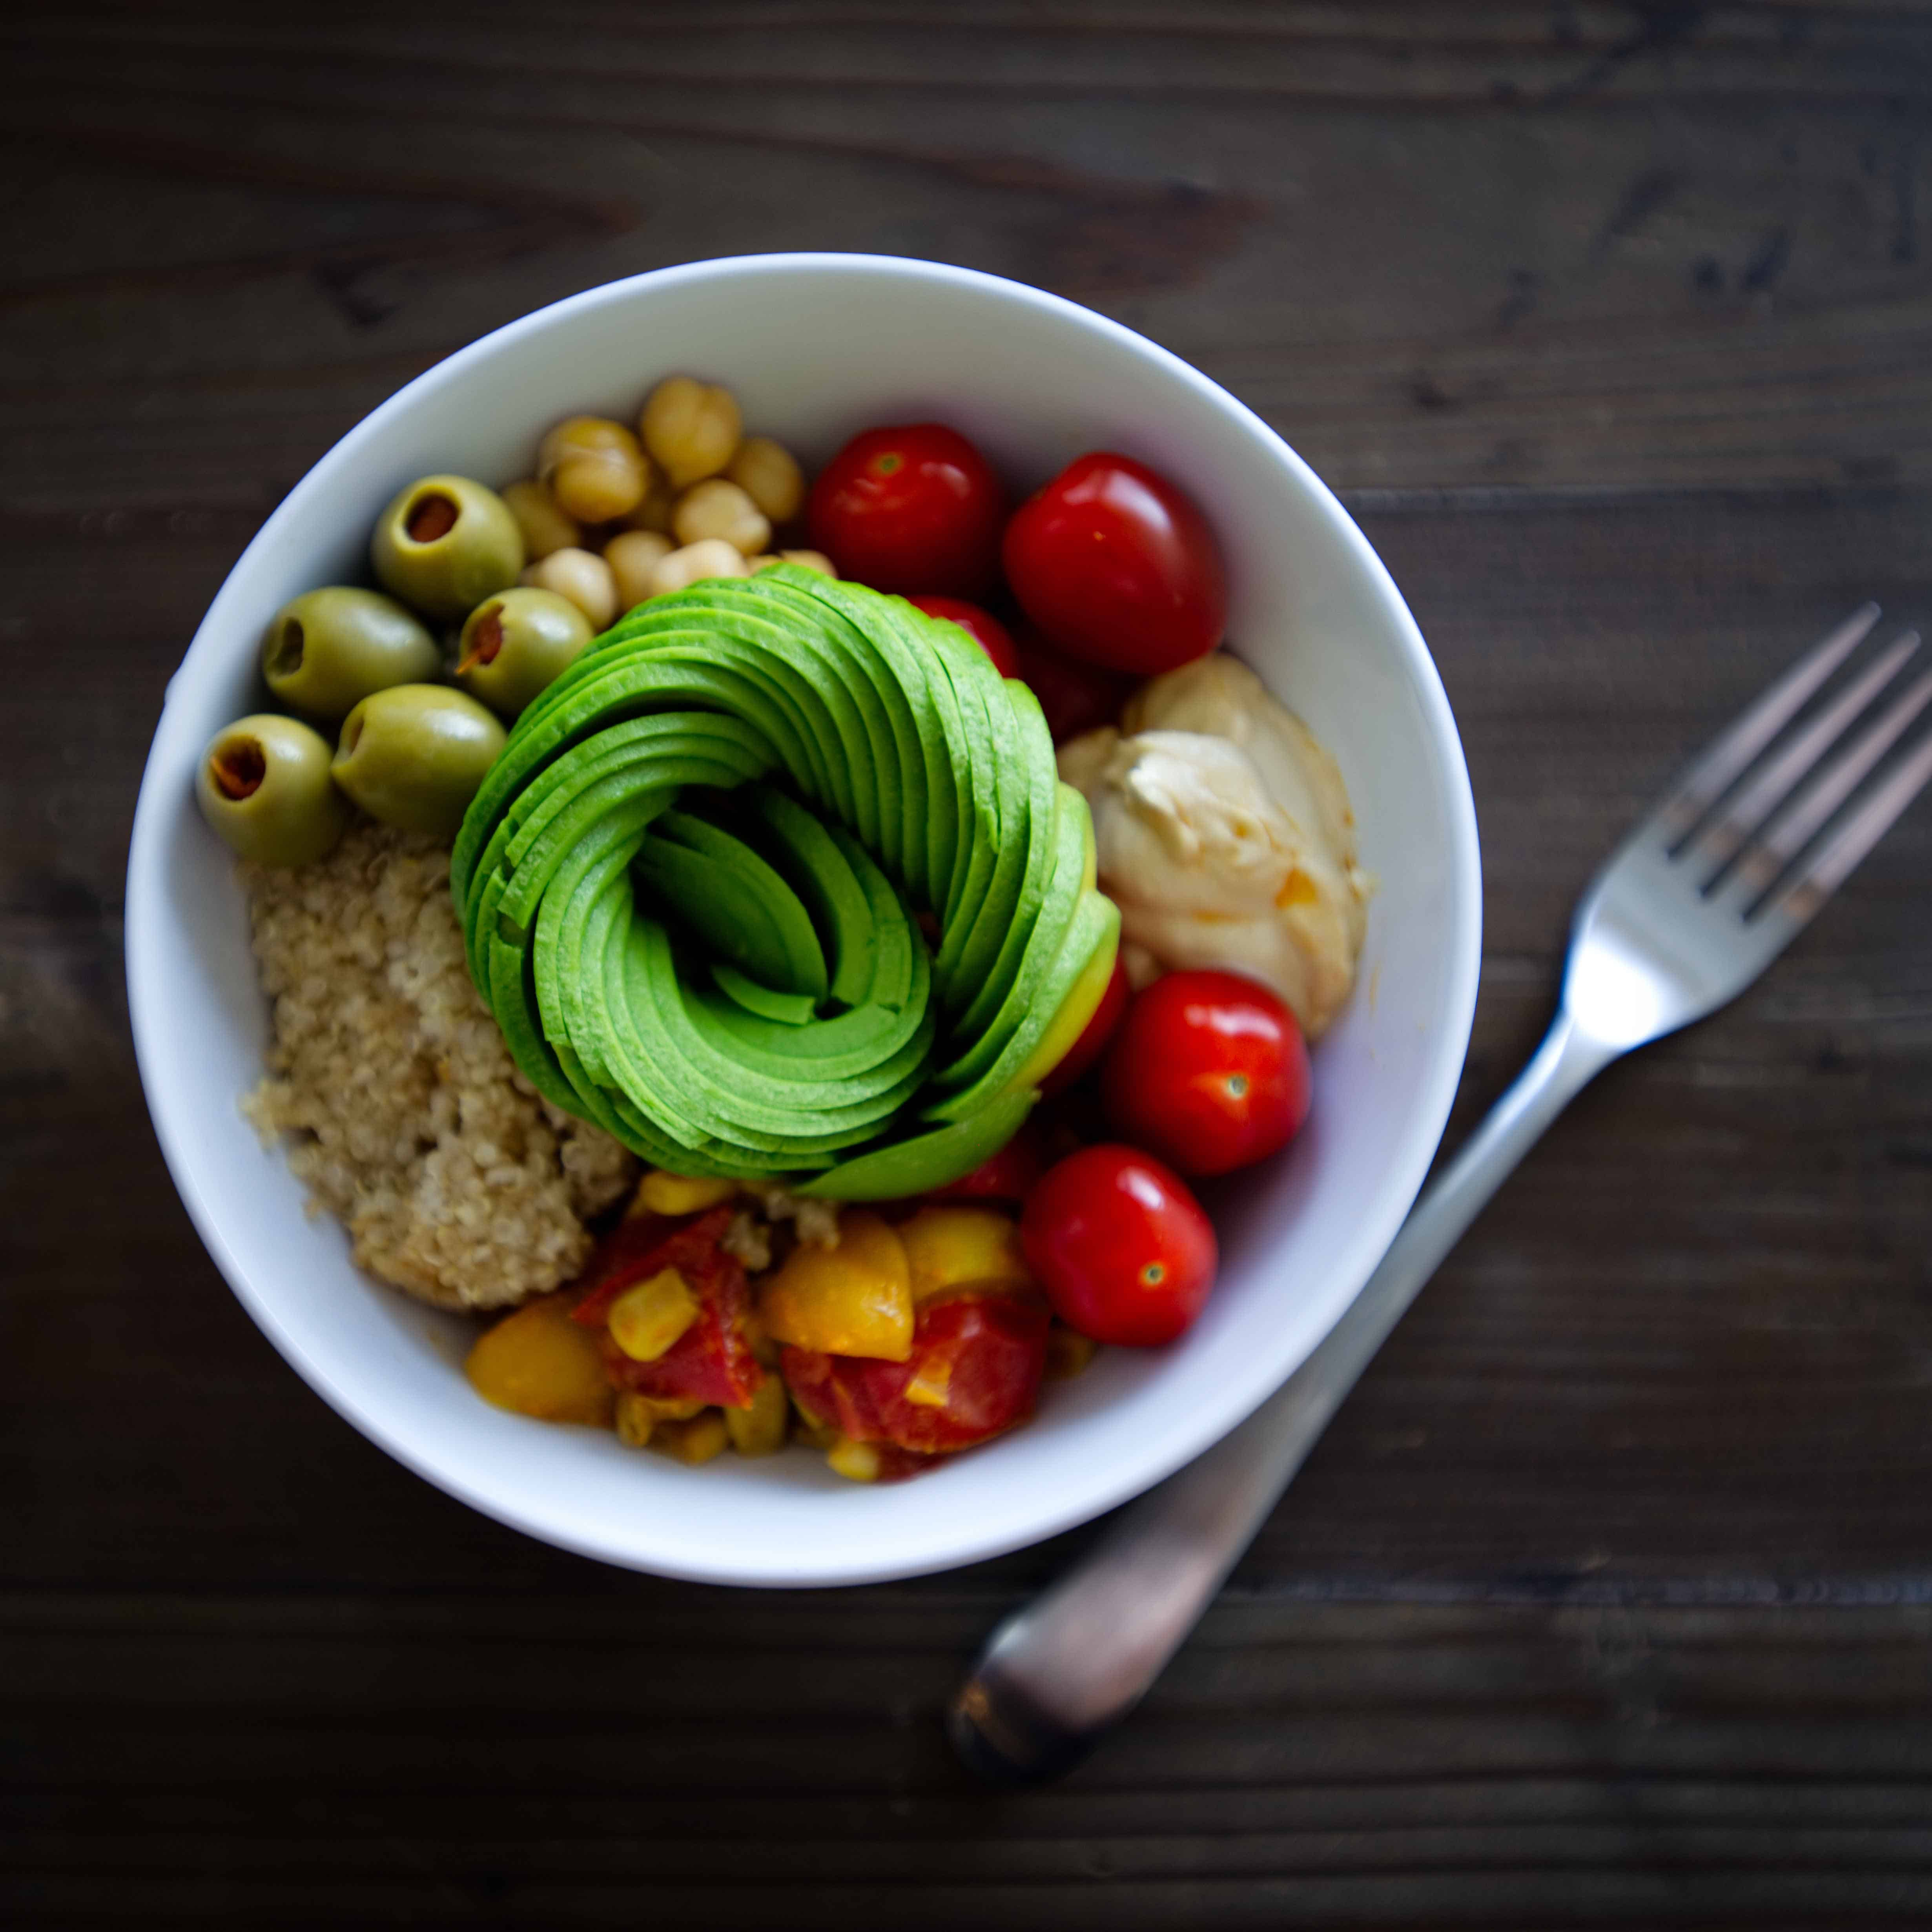 Easy & Healthy Vegan Treats: How To Make A Buddha Bowl In No Time